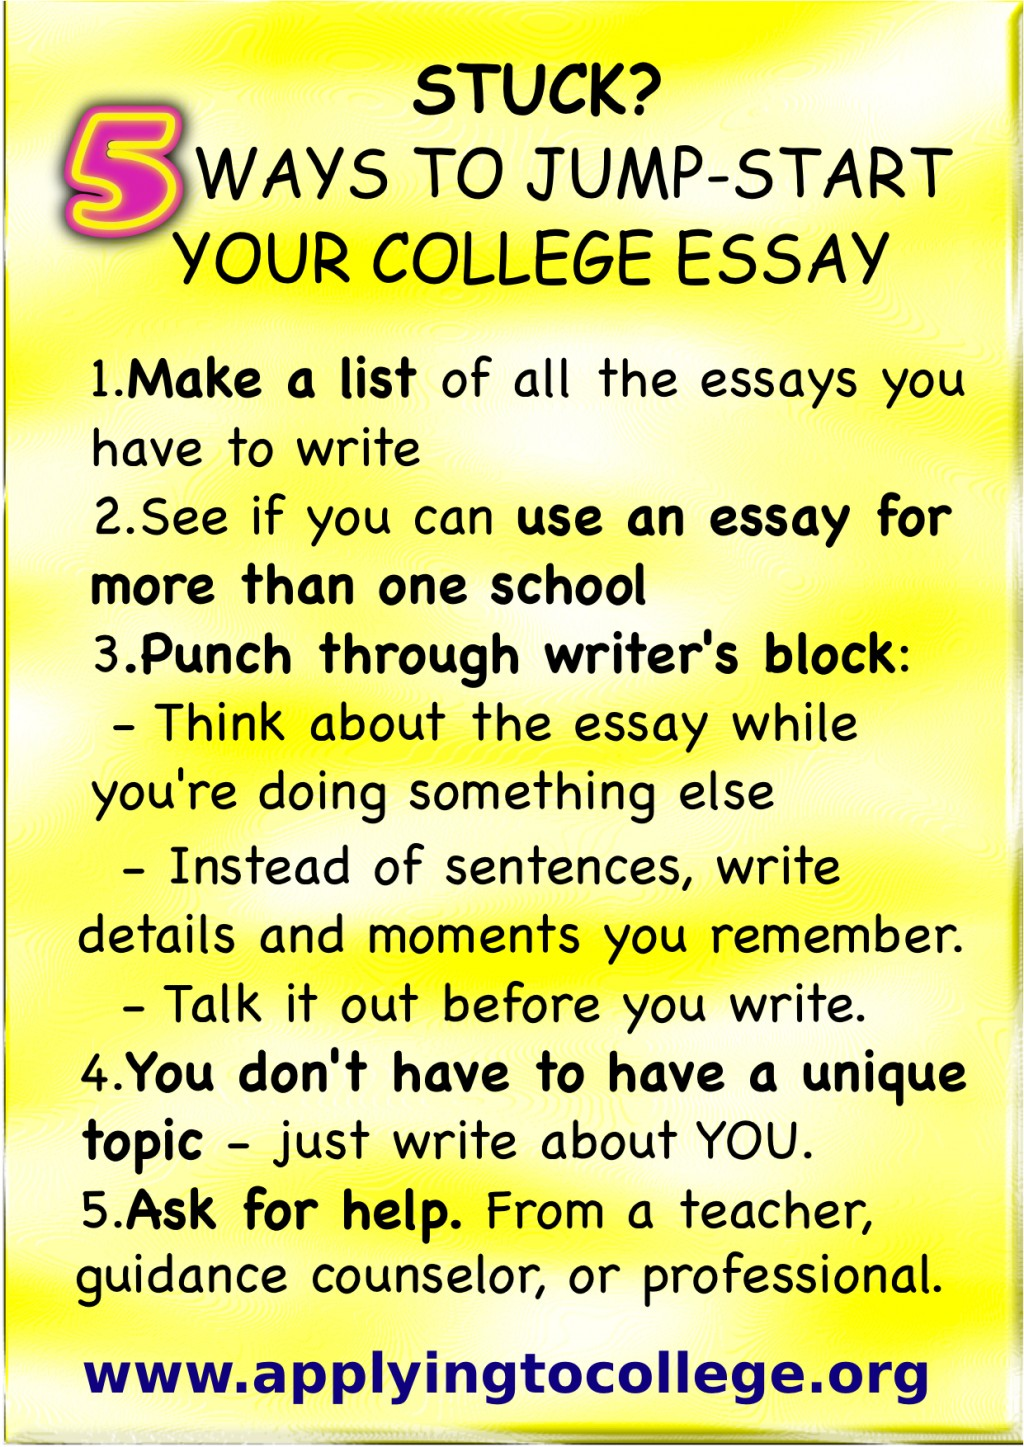 008 Good Way To Start An Essay Stuck Tips Jump Your College Applying Ways Essays L Striking About A Book Racism Different Large